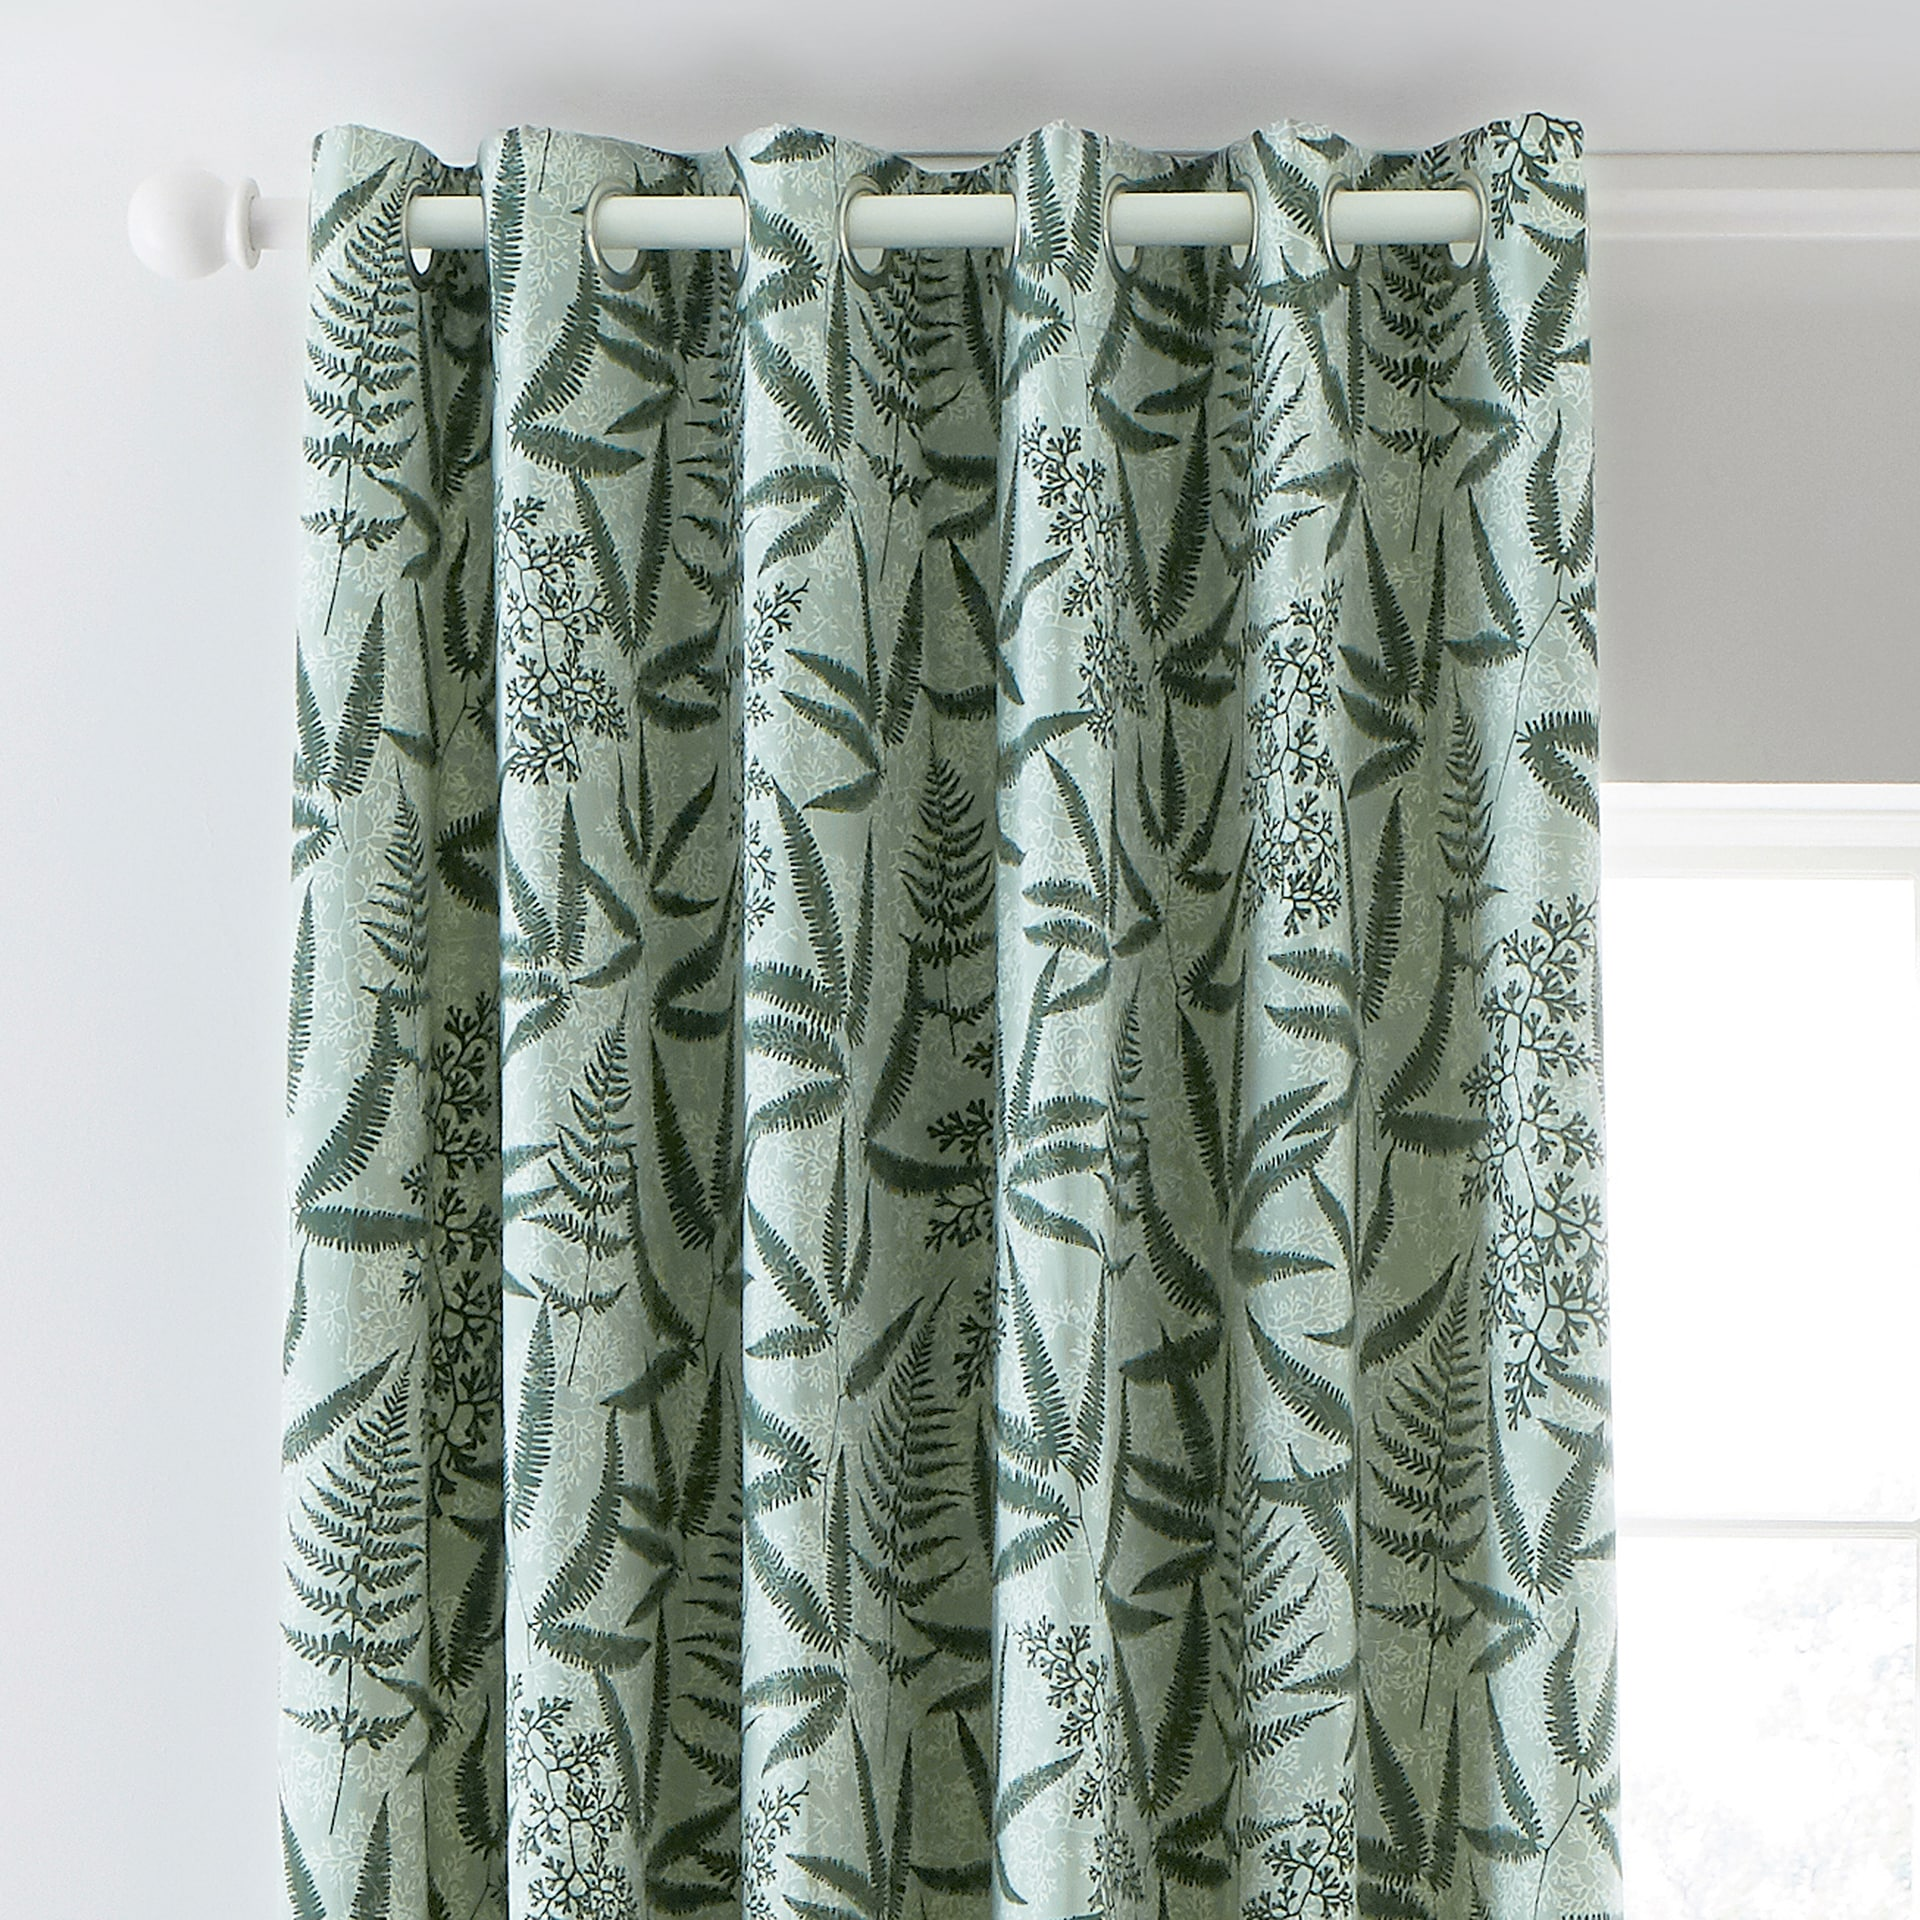 CLARISSA HULSE Costa Rica Fern curtain header